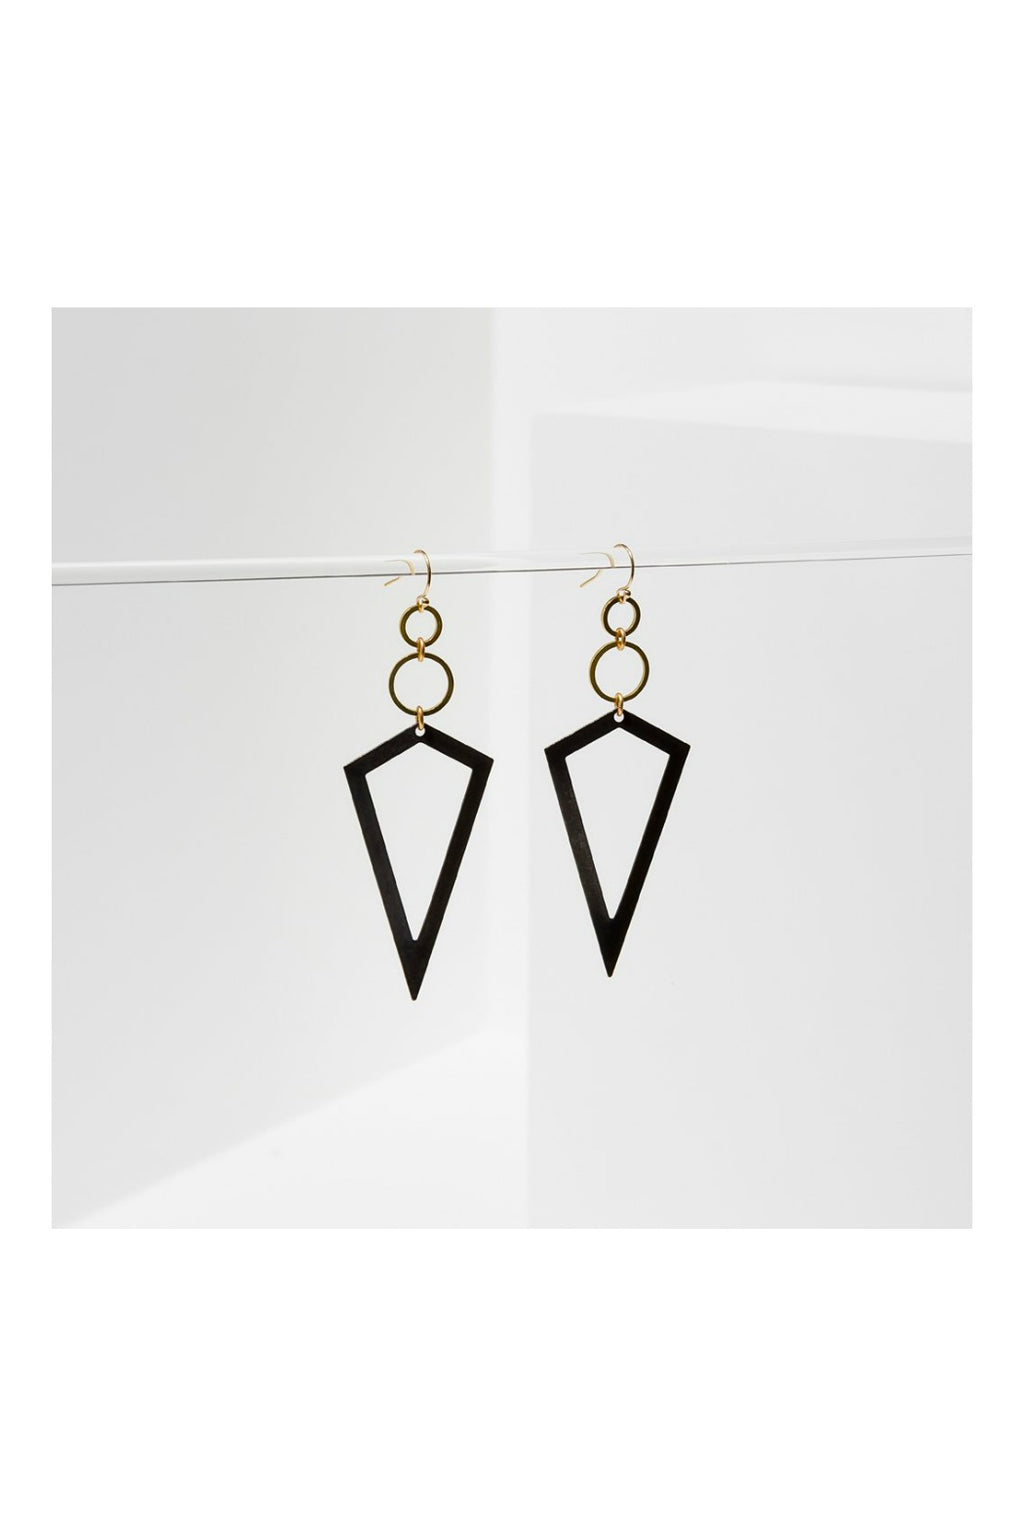 Larissa Loden Vertigo Earrings - Black